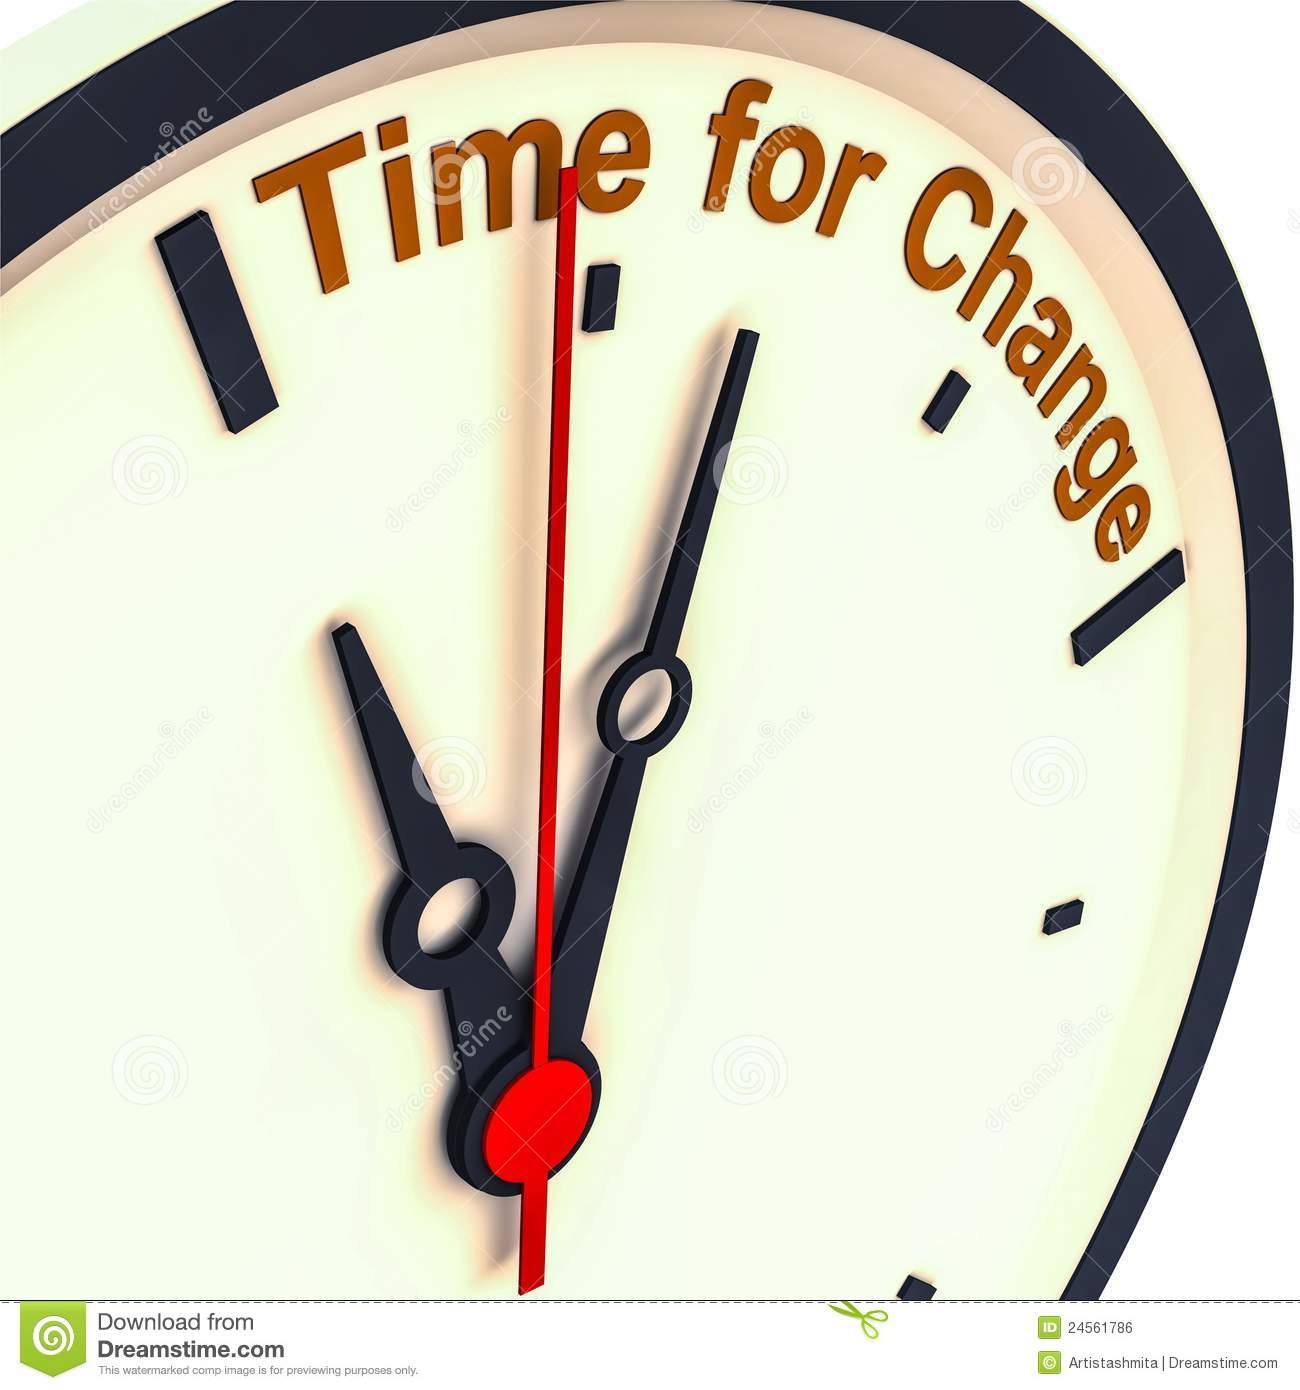 Time For Change Stock Illustration. Illustration Of